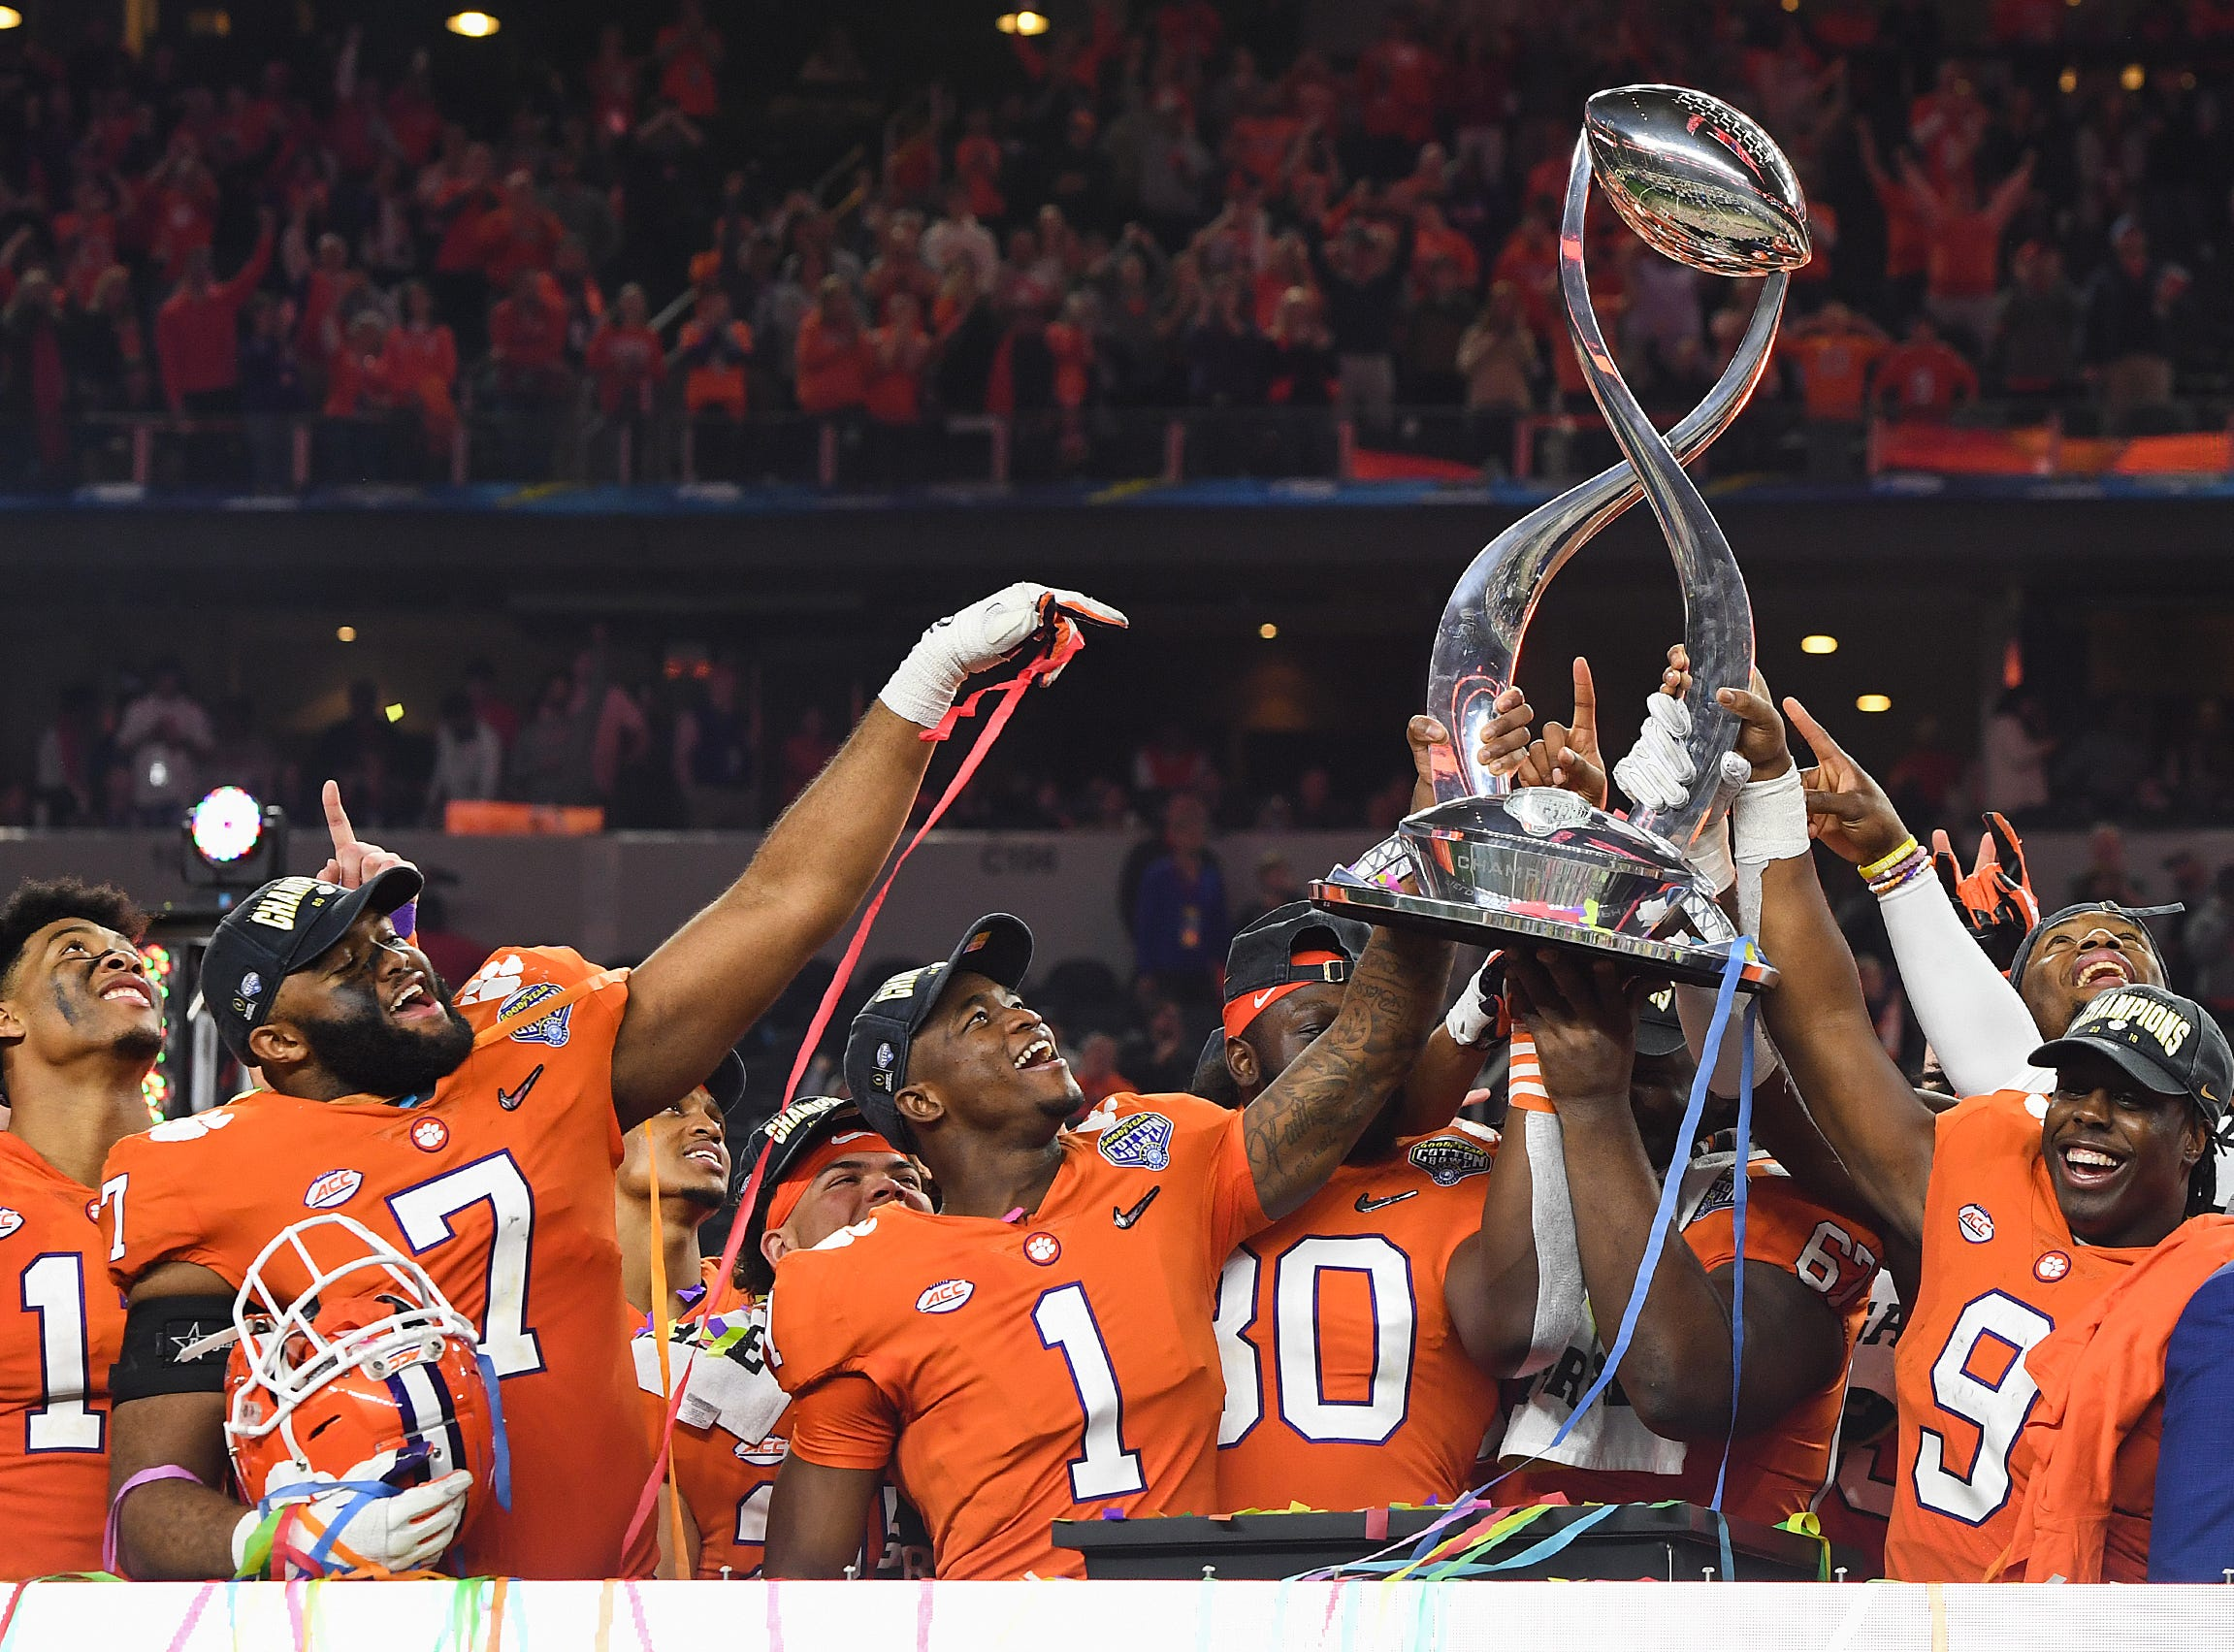 Clemson players cornerback Trayvon Mullen (1), tight end Milan Richard (80), defensive lineman Albert Huggins (67), and running back Travis Etienne (9) hold the Goodyear Cotton Bowl trophy after their 30-3 win over Notre Dame at AT&T stadium in Arlington, TX Saturday, December 29, 2018.